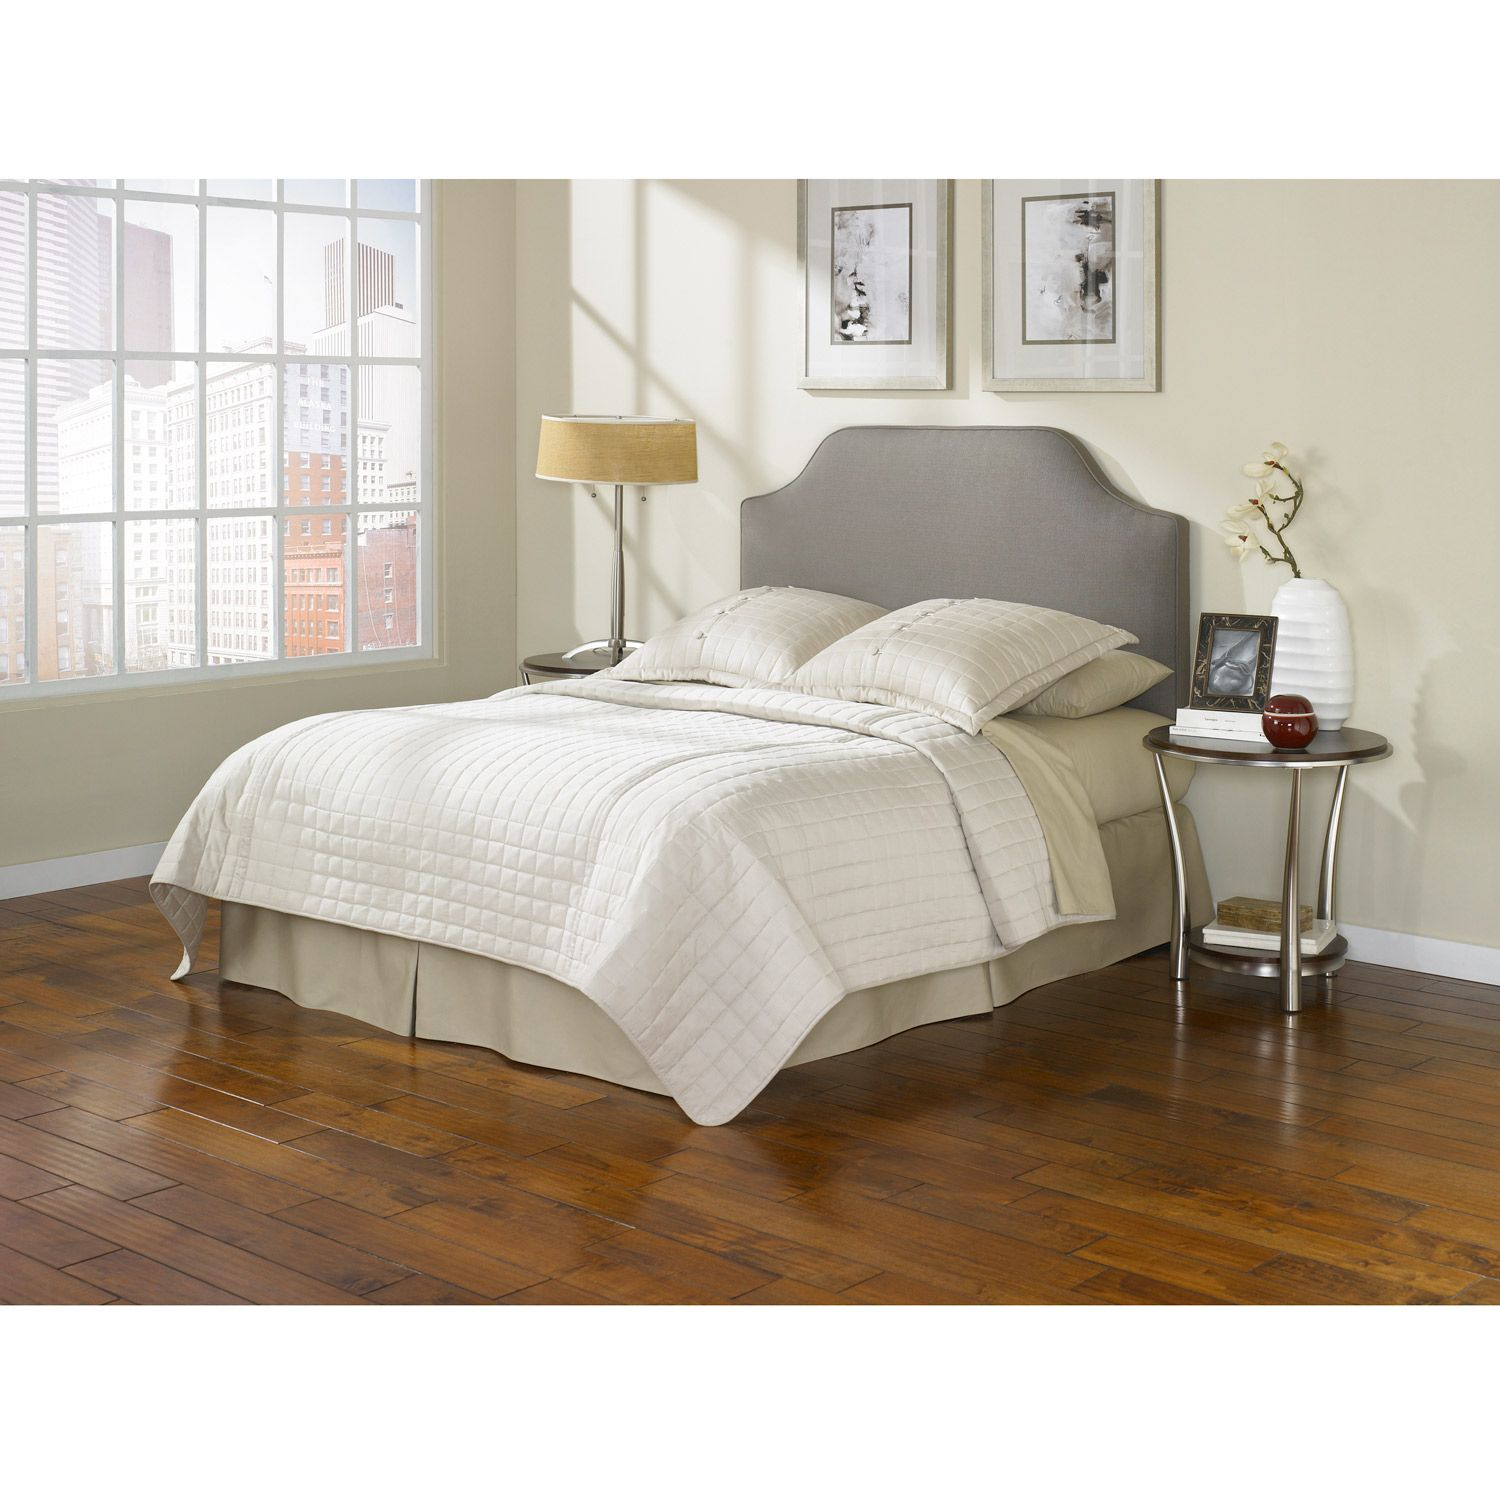 Bordeaux Taupe Full Size Bed Headboard With Nightstand Set